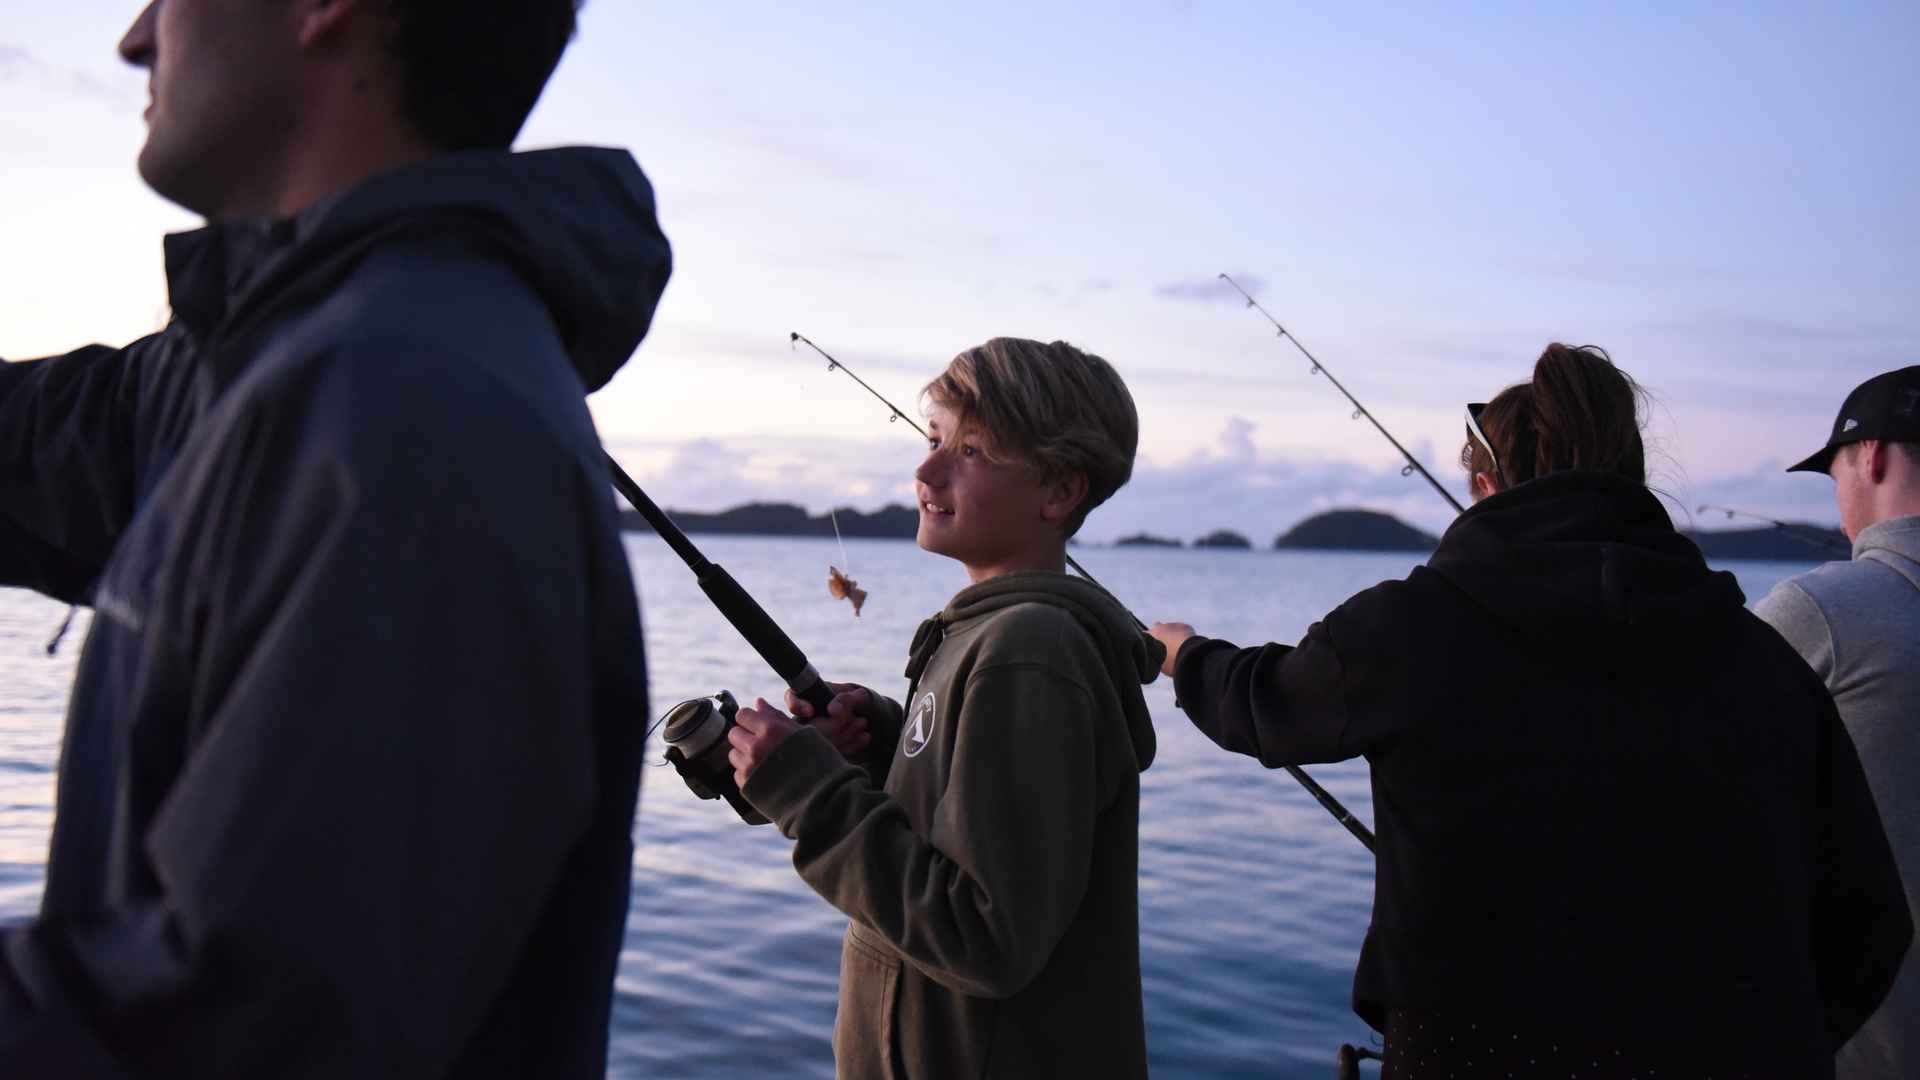 kid fishing at the rock bay of islands